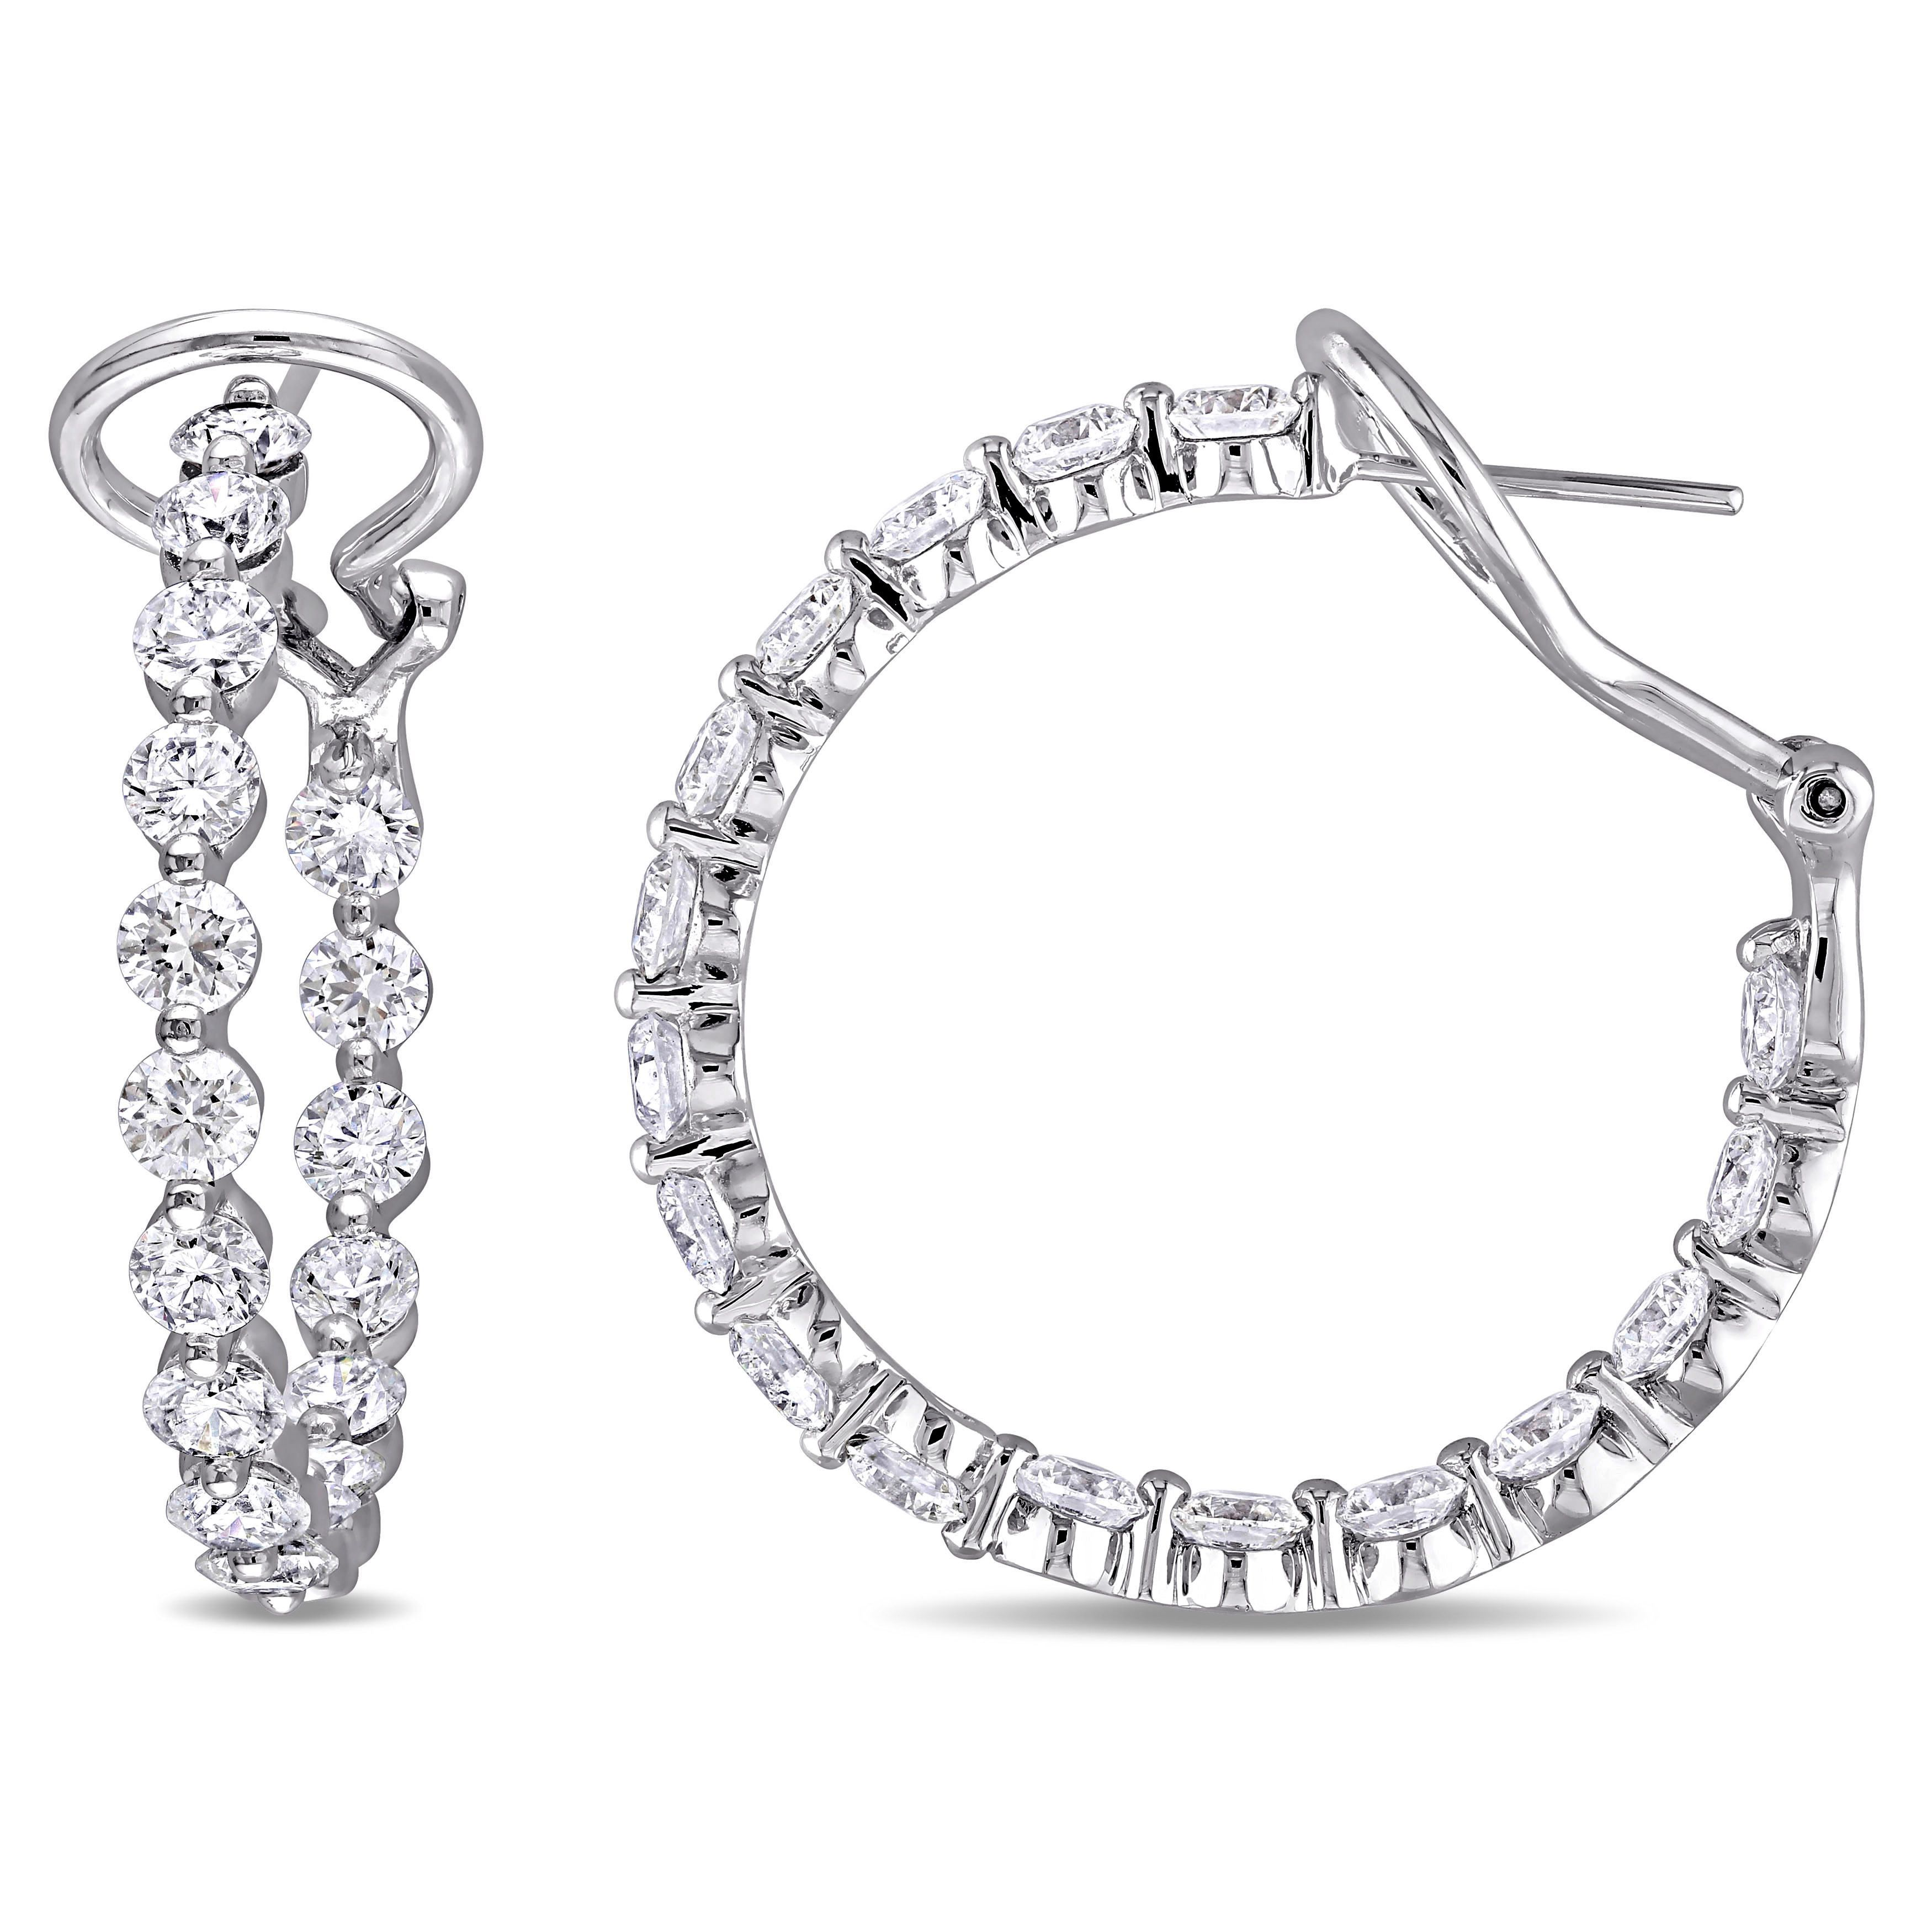 Wouldn't complain about these in my stocking!! Amazing discount. http://www.overstock.com/10647531/product.html?CID=245307